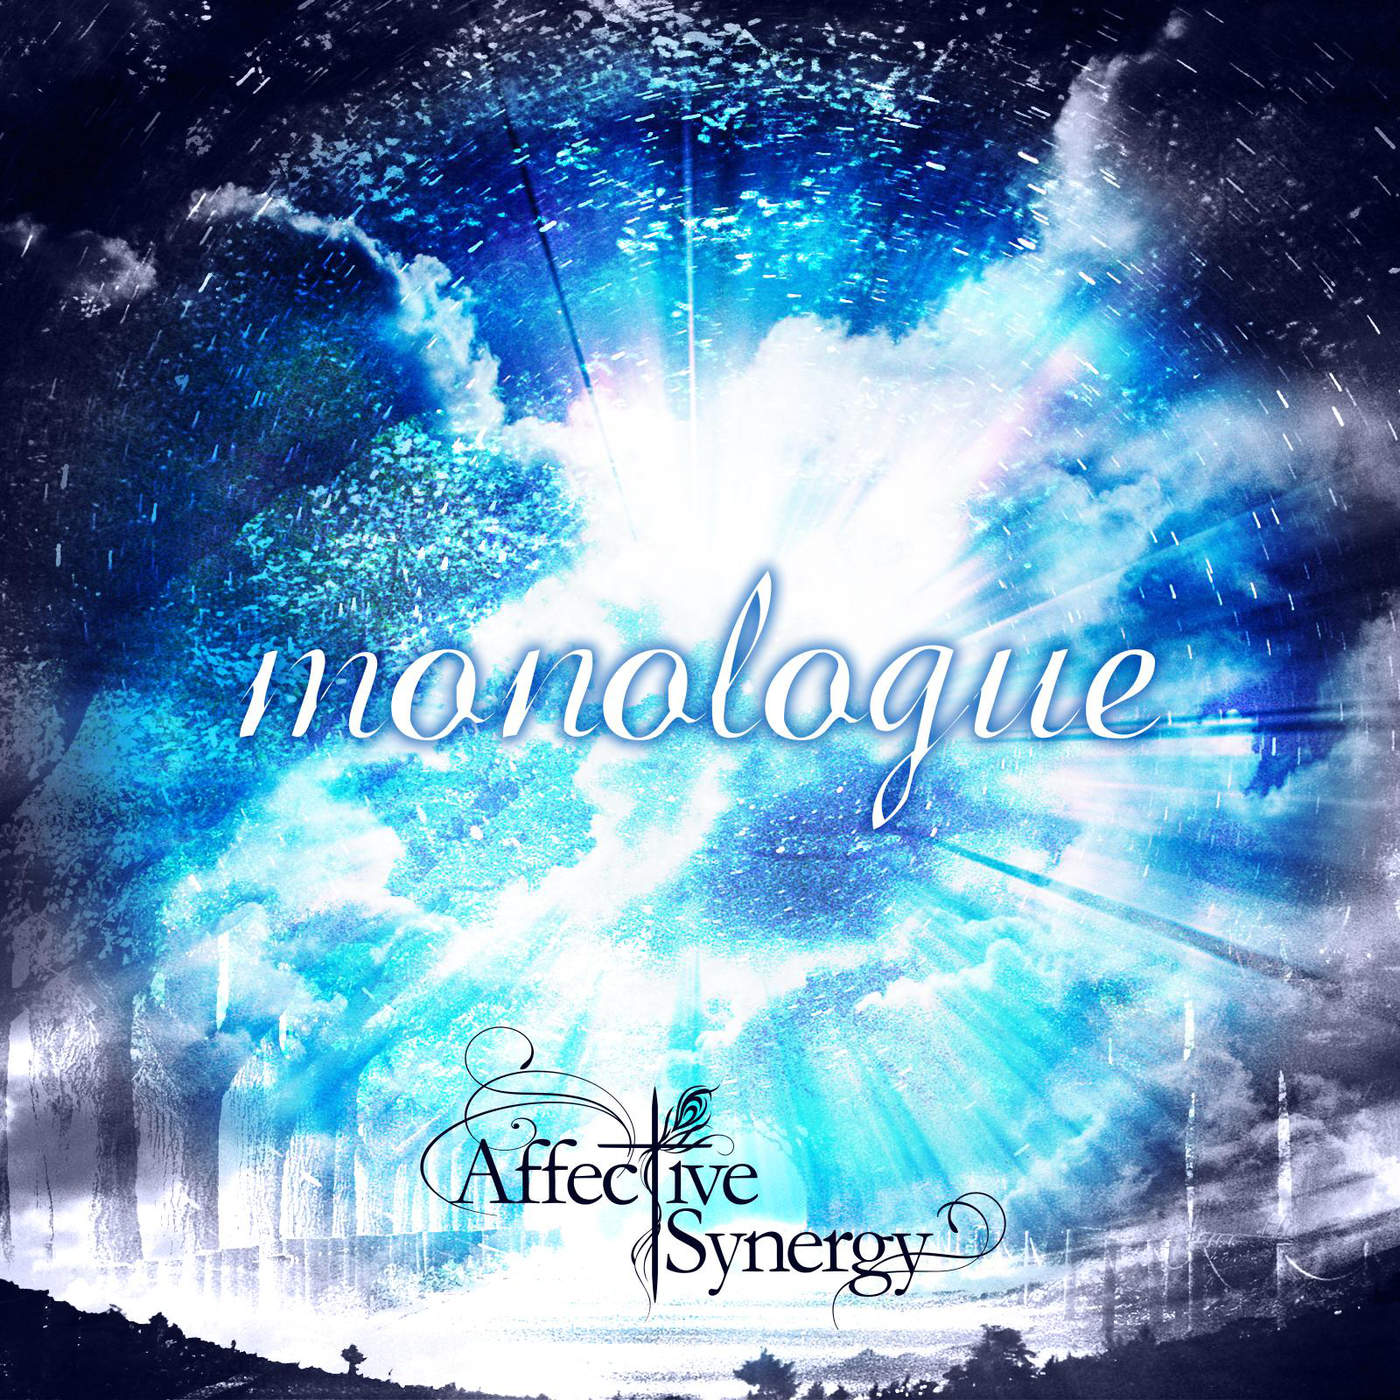 Affective synergy single monologue 20170621 visual kei j affective synergy single monologue 20170621 ccuart Image collections